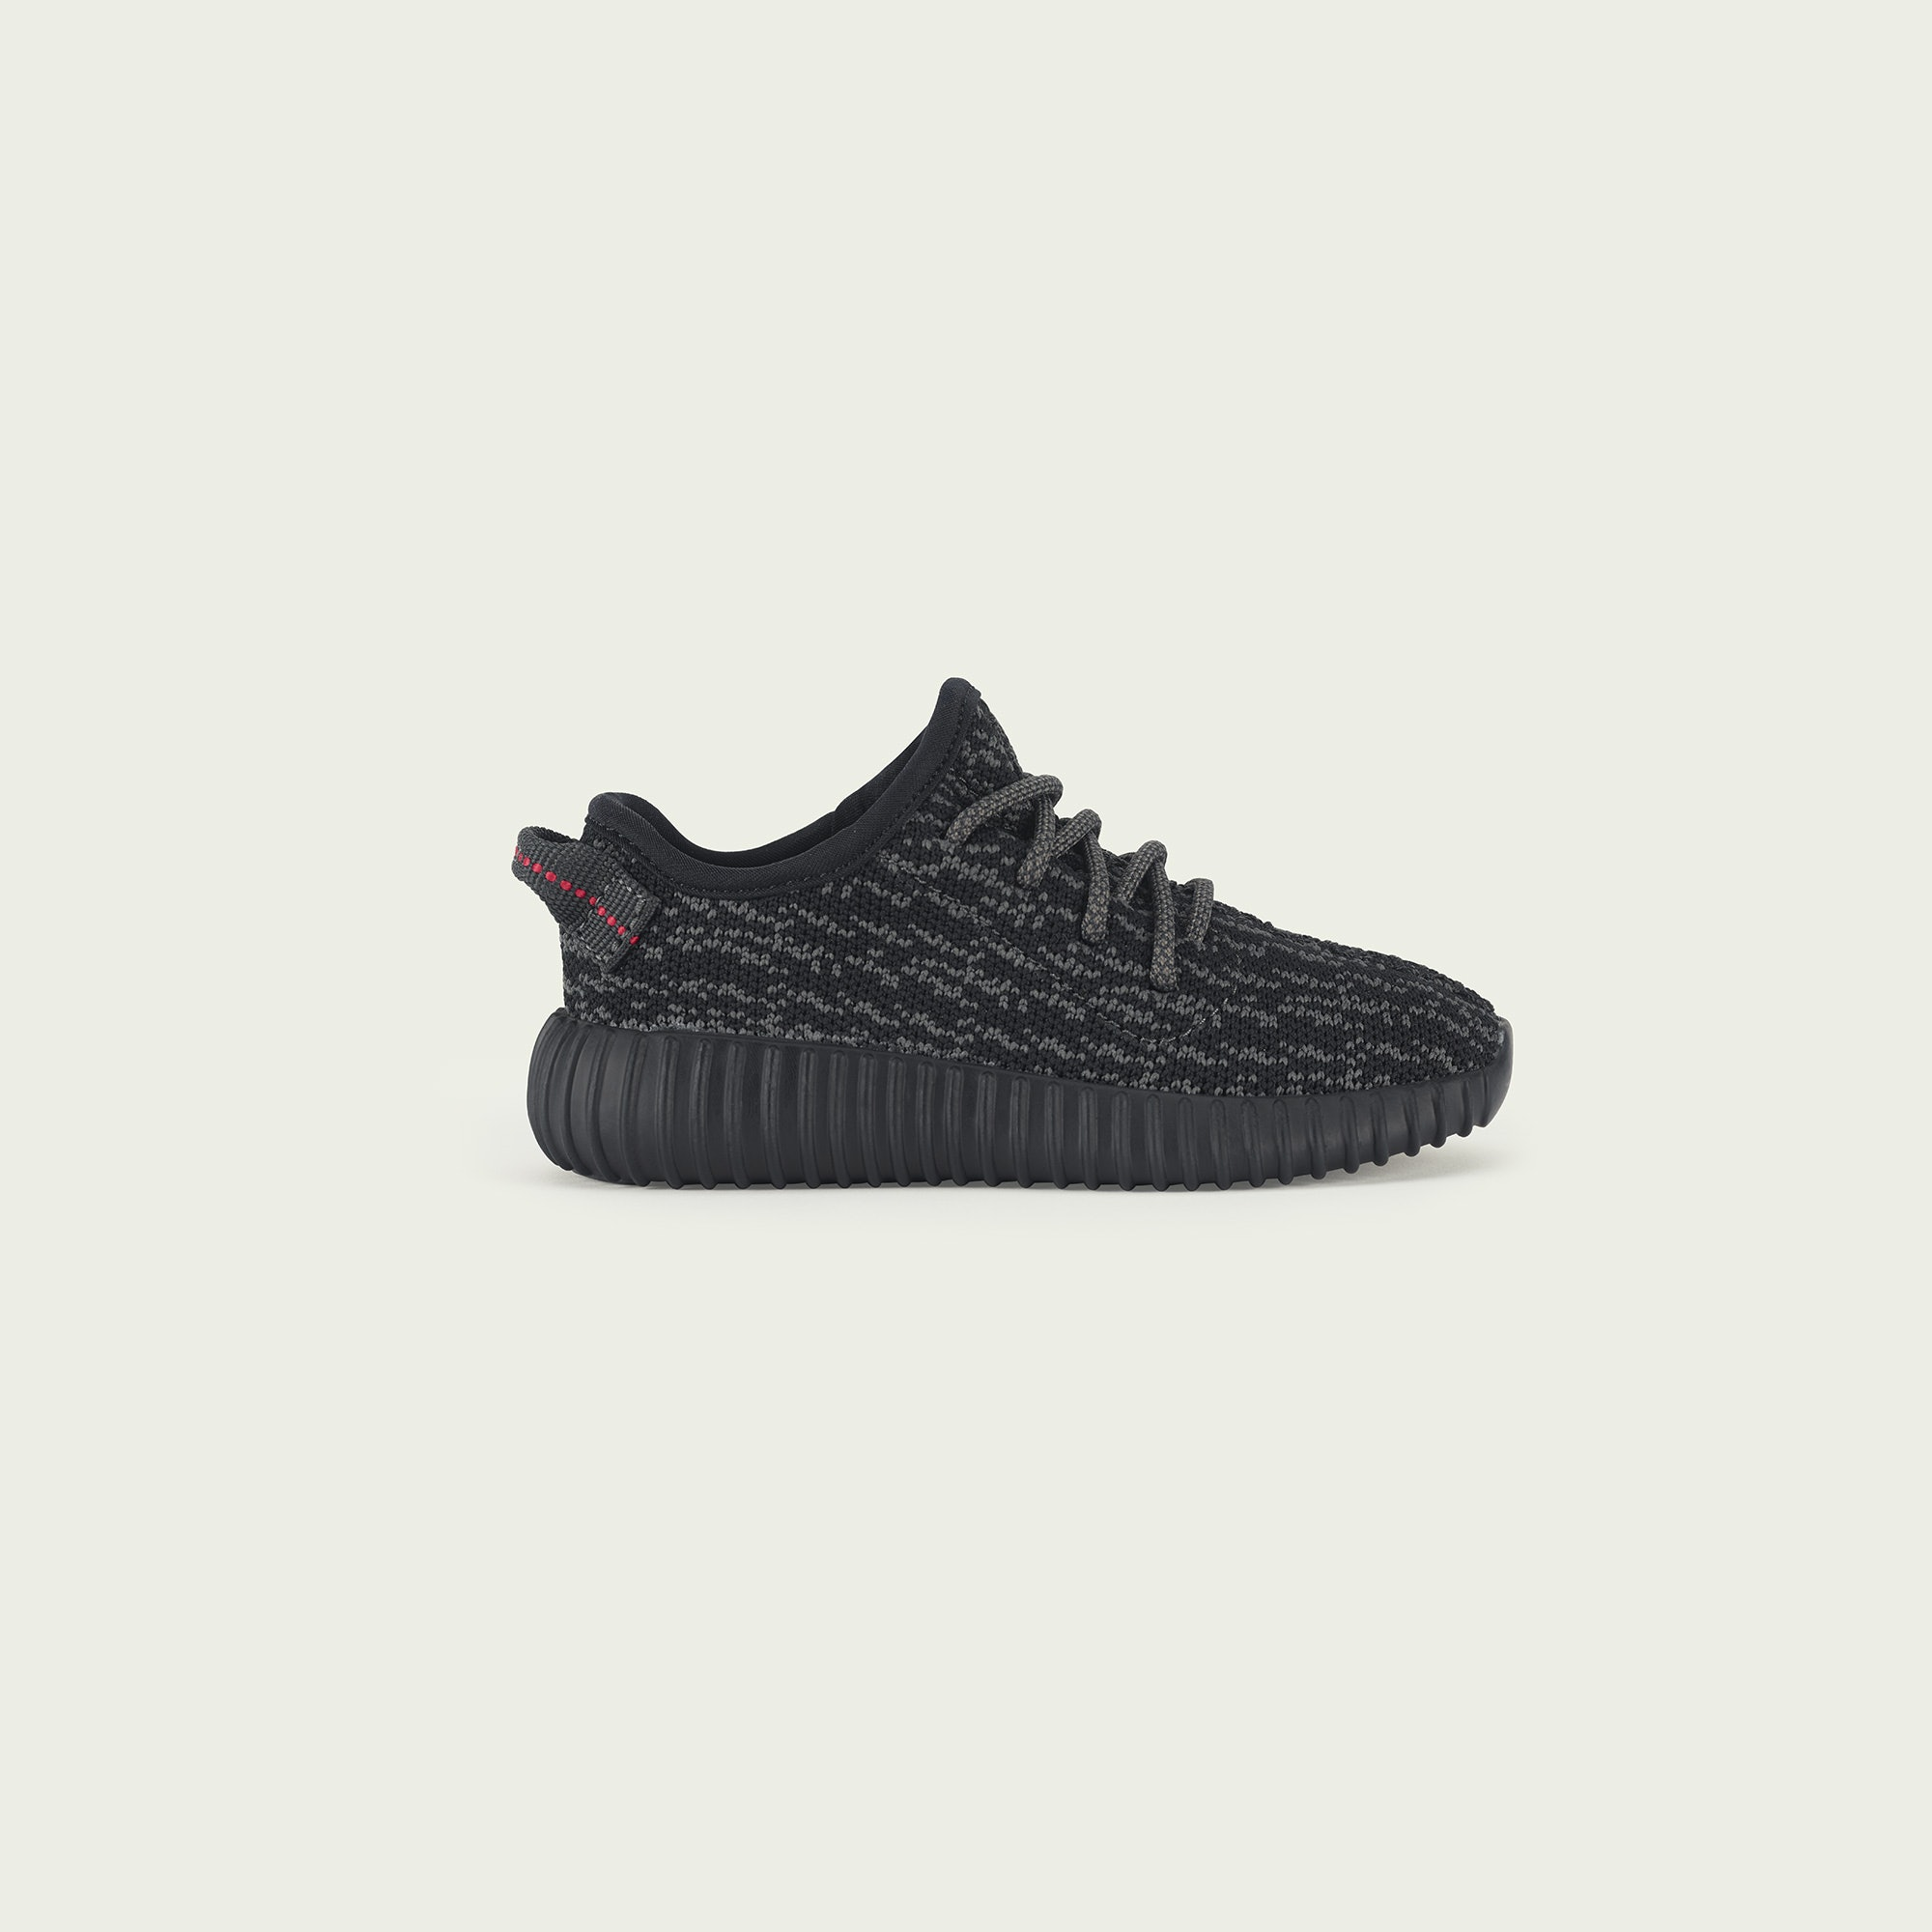 067276be2ac47 Can You Customize Baby Yeezys  Yes